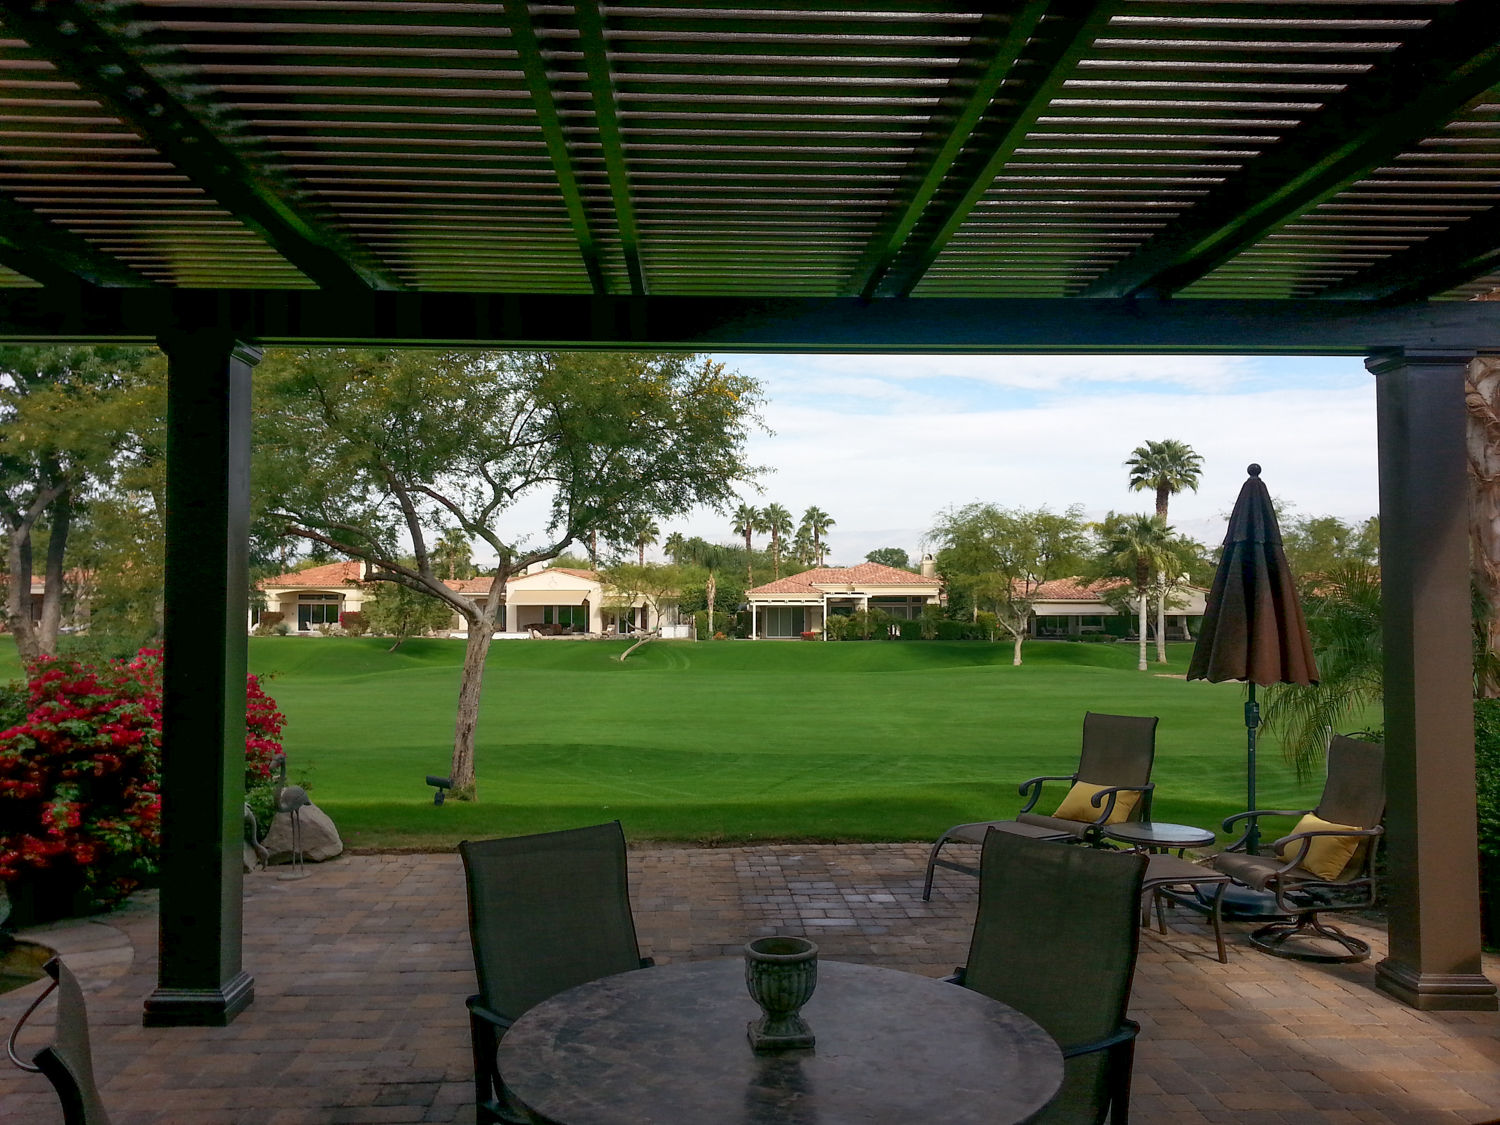 Alumawood Patio Cover in Palm Desert, CA